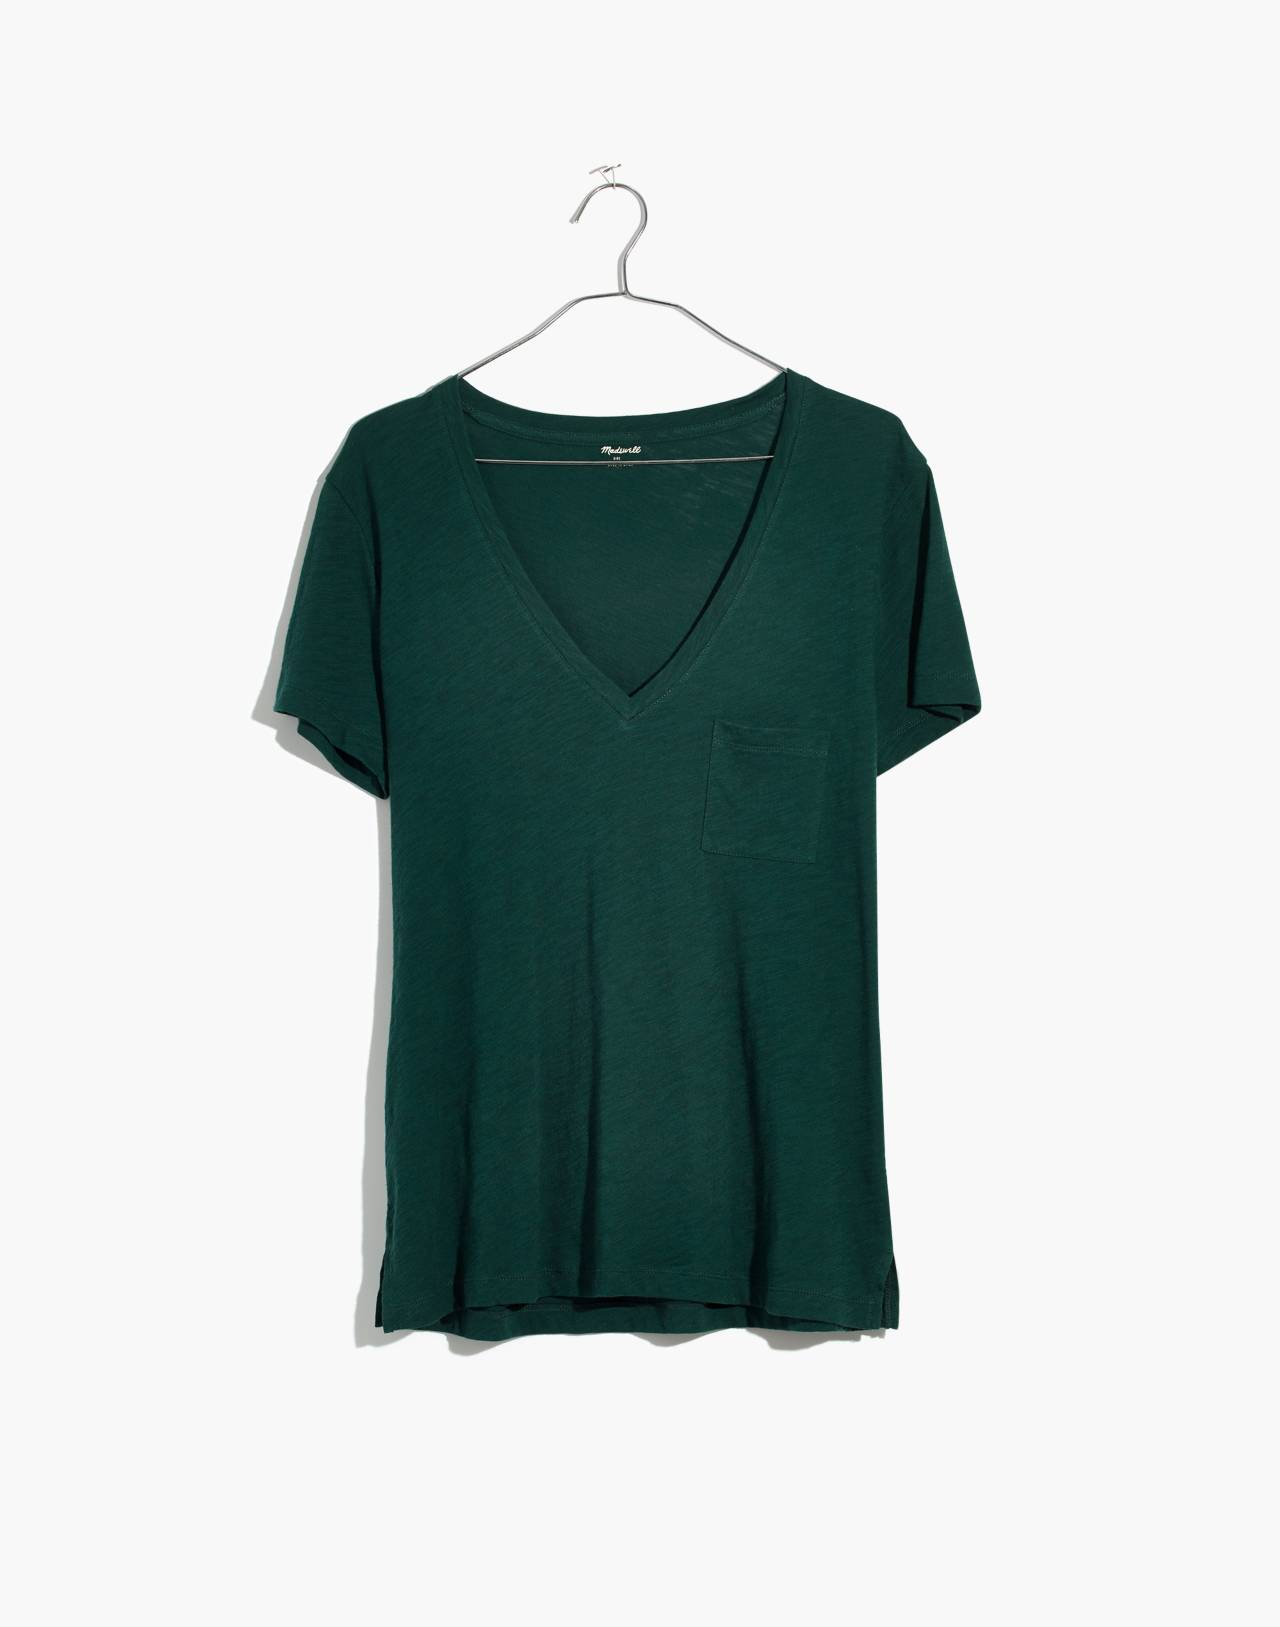 Whisper Cotton V-Neck Pocket Tee in smoky spruce image 4